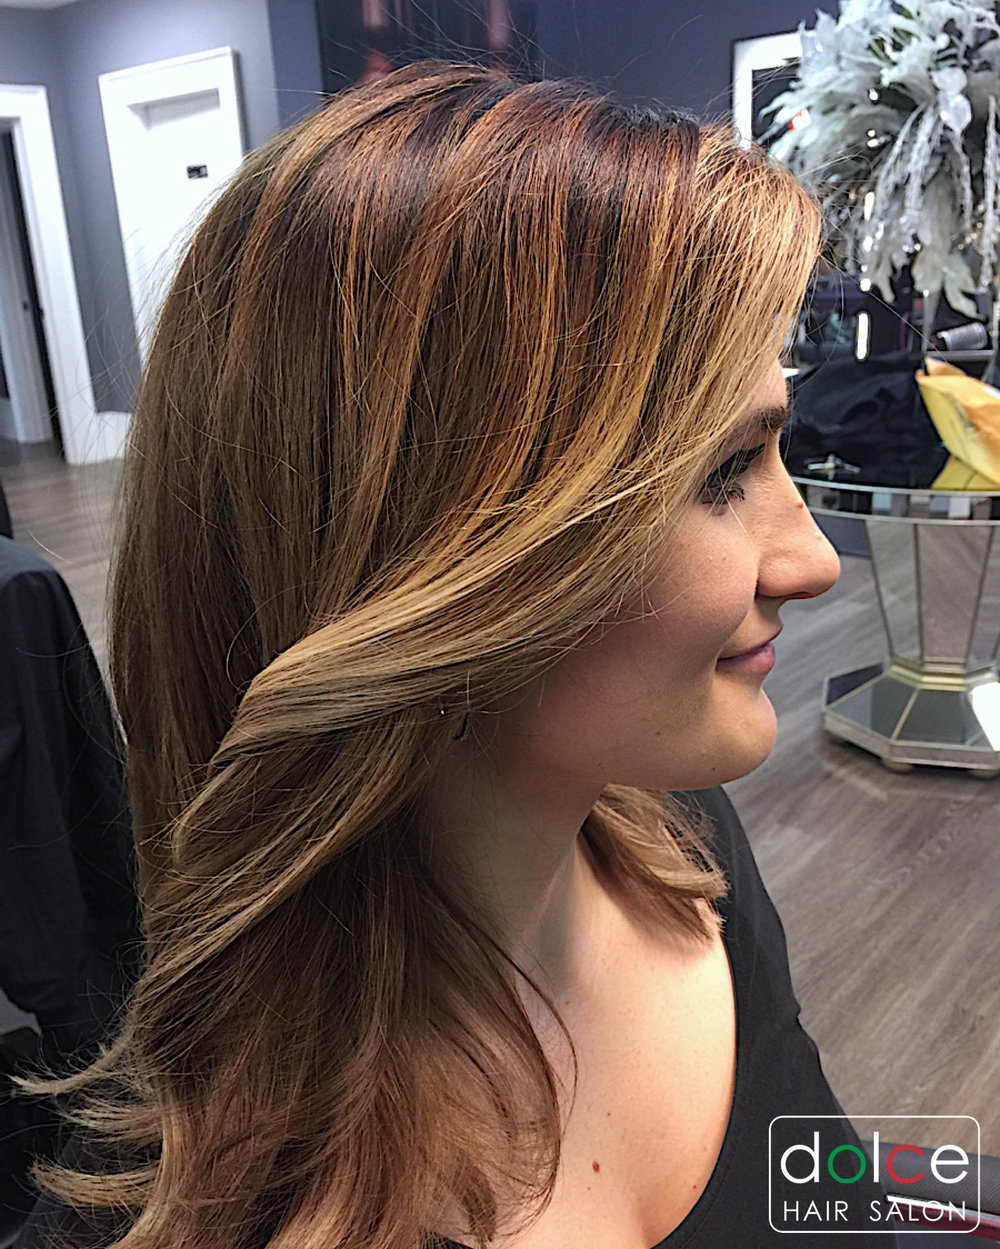 Dolce Hair Salon Pictures Pics 10.jpg